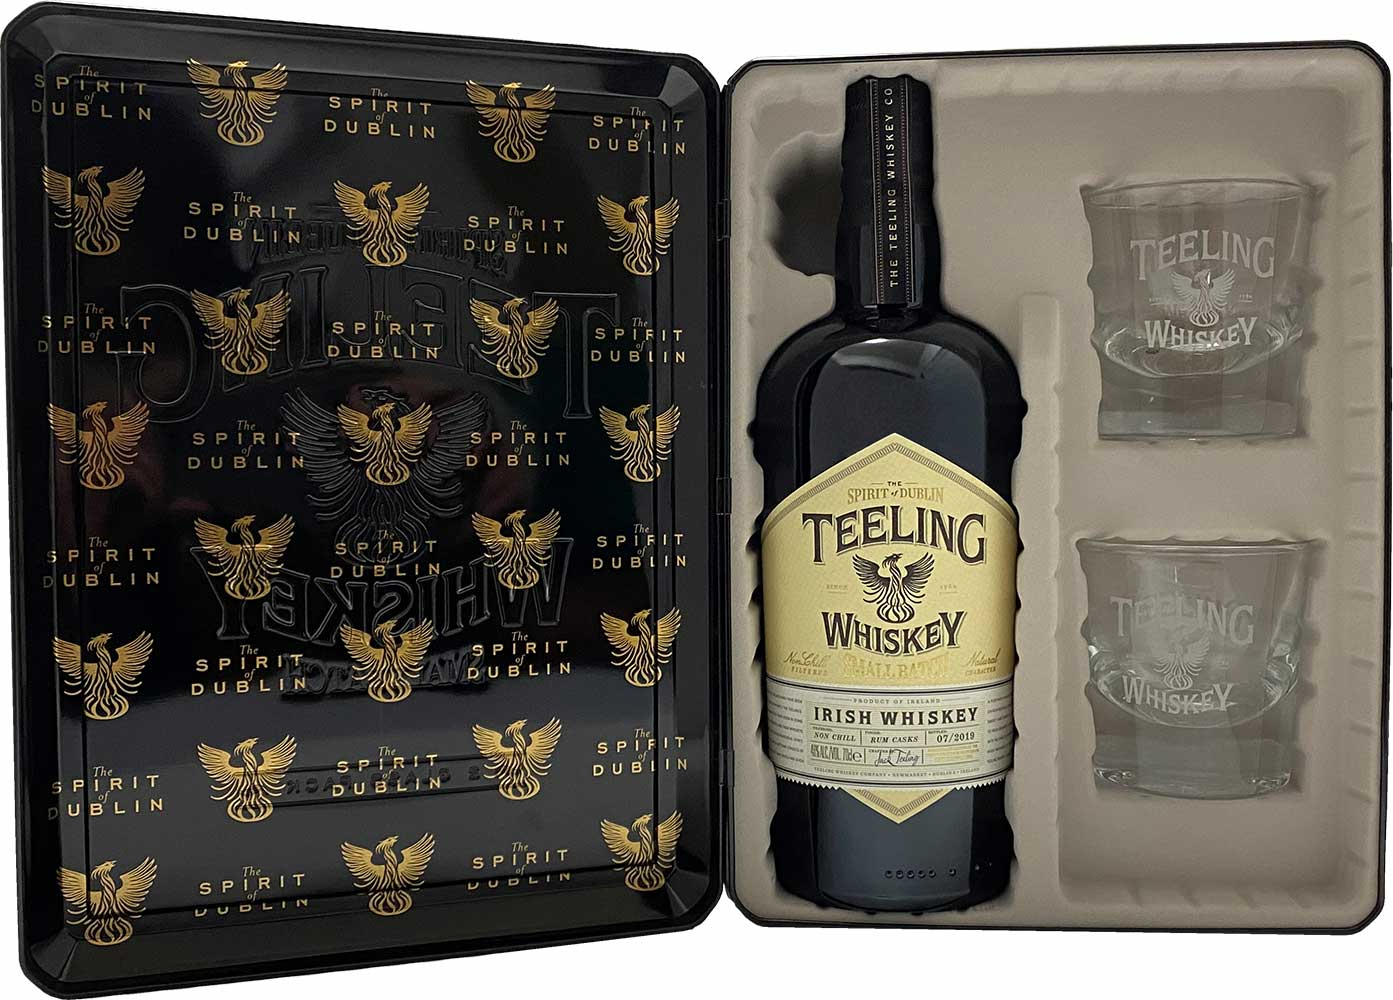 TEELING SMALL BATCH BLENDED<br>GIFT PACK<br>ティーリング スモールバッチ ブレンデッド<br>ギフトパック(ロックグラス2個付き)